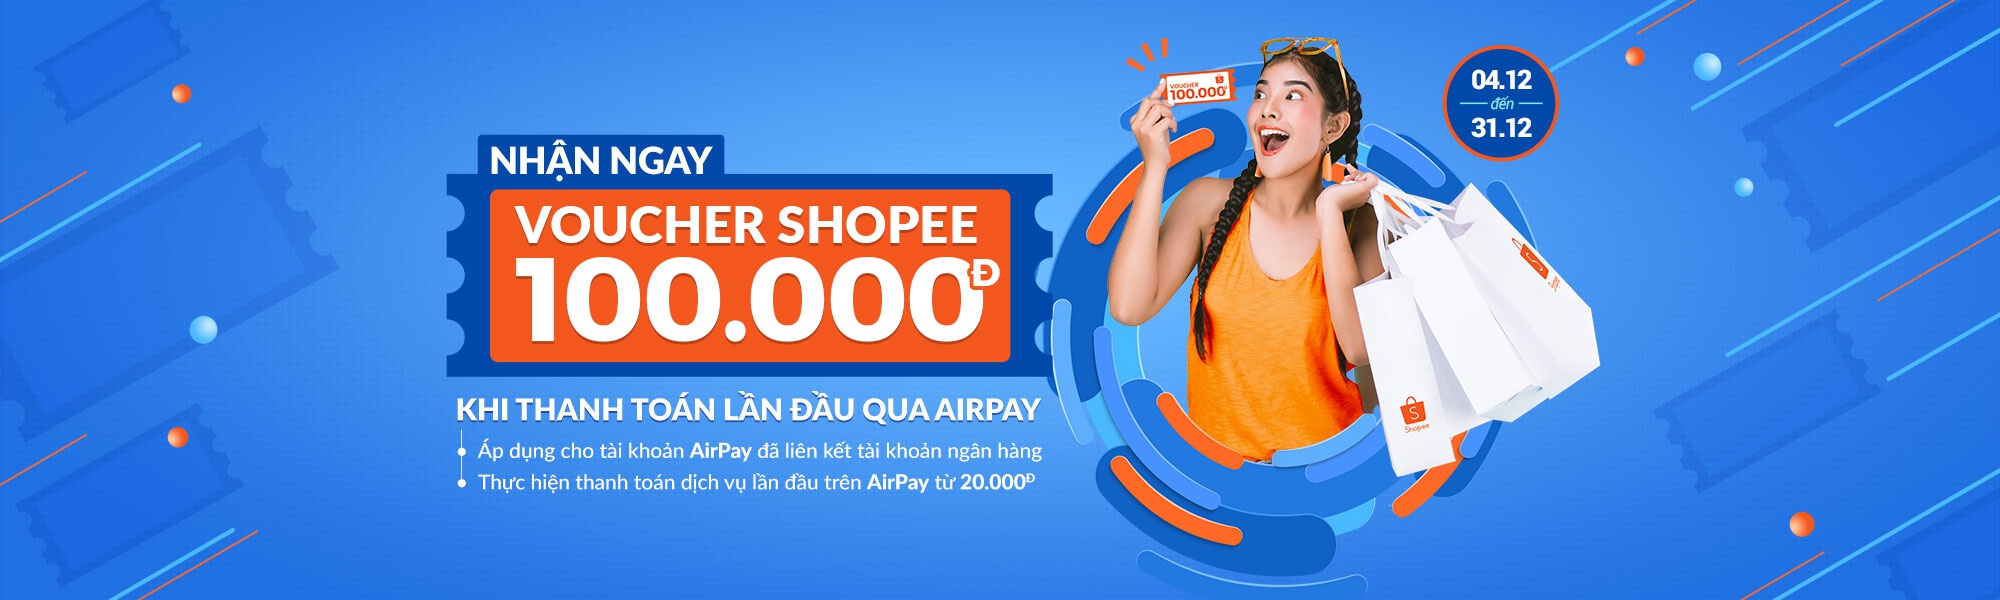 shopee-100k-new-users-promotion